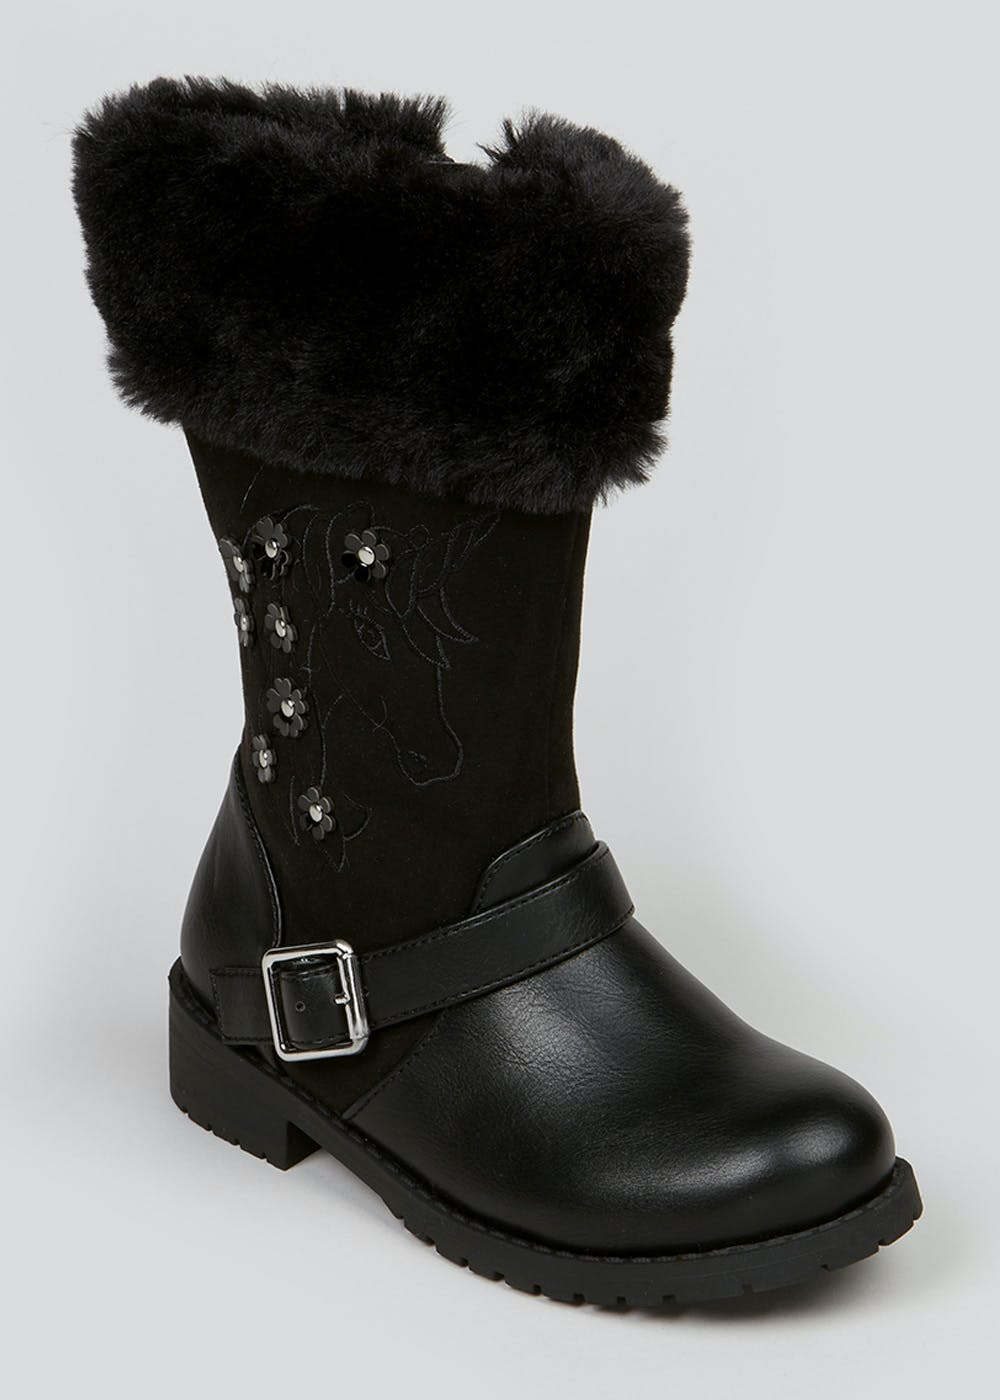 Girls Black Unicorn Boots (Younger 4-12